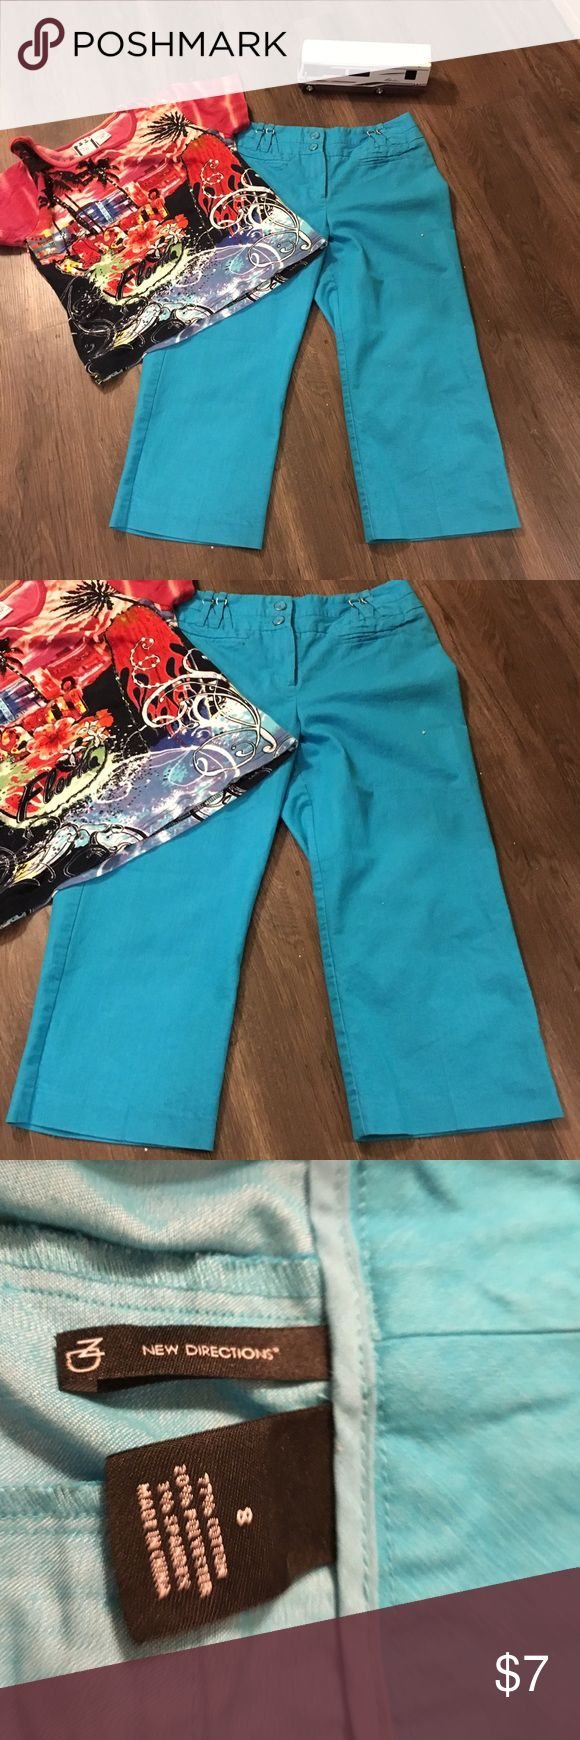 New Direction bright blue capris This is a pair of good condition capris by new Direction they are bright blue with pockets back.  They are size 8 in women's new directions Pants Capris